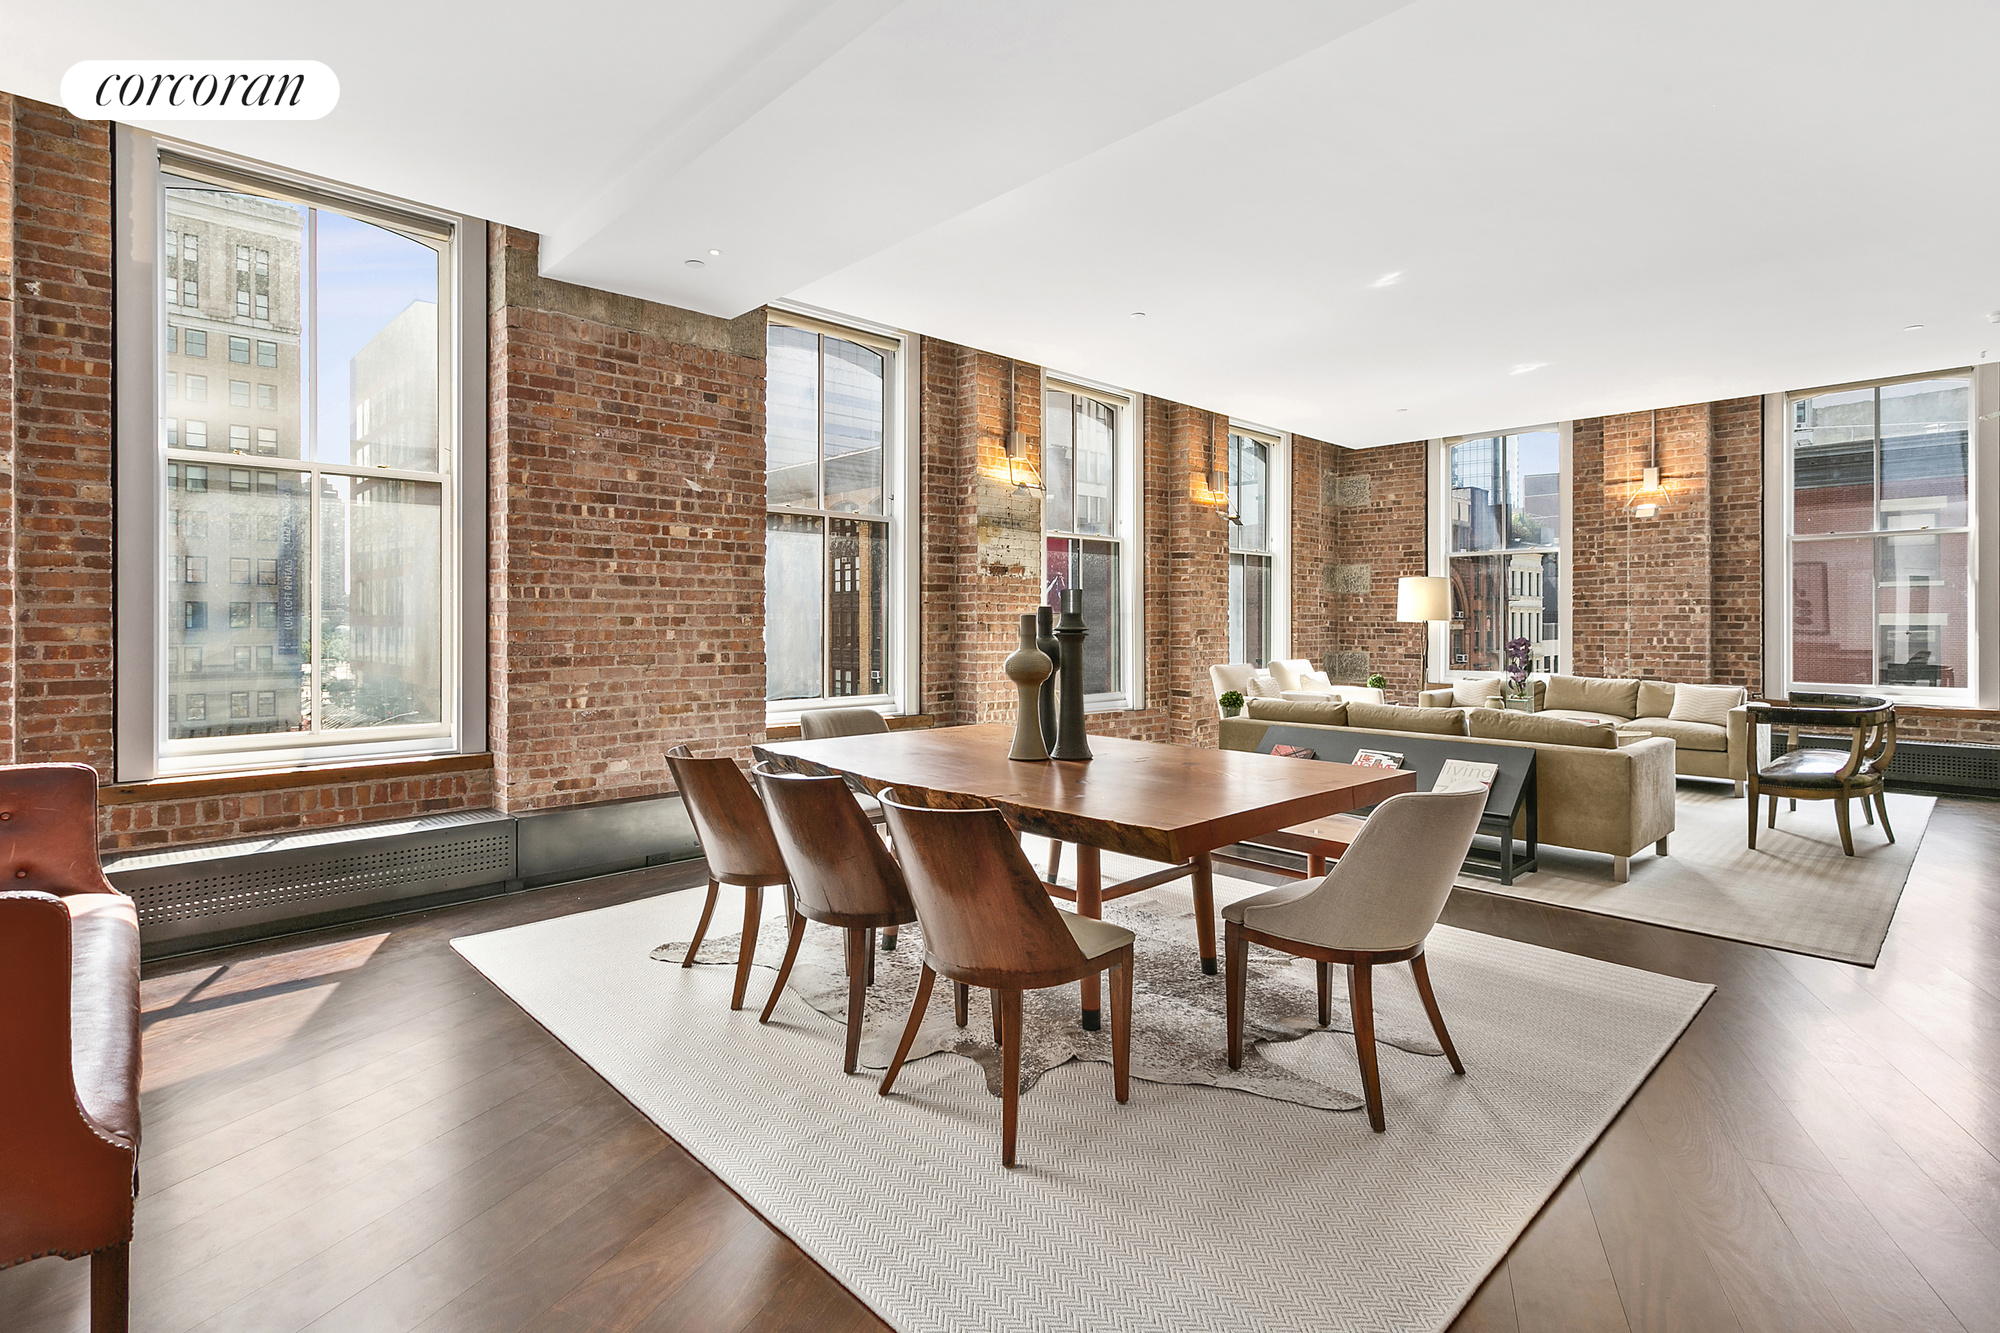 60 Warren Street, Apt 4, Manhattan, New York 10007